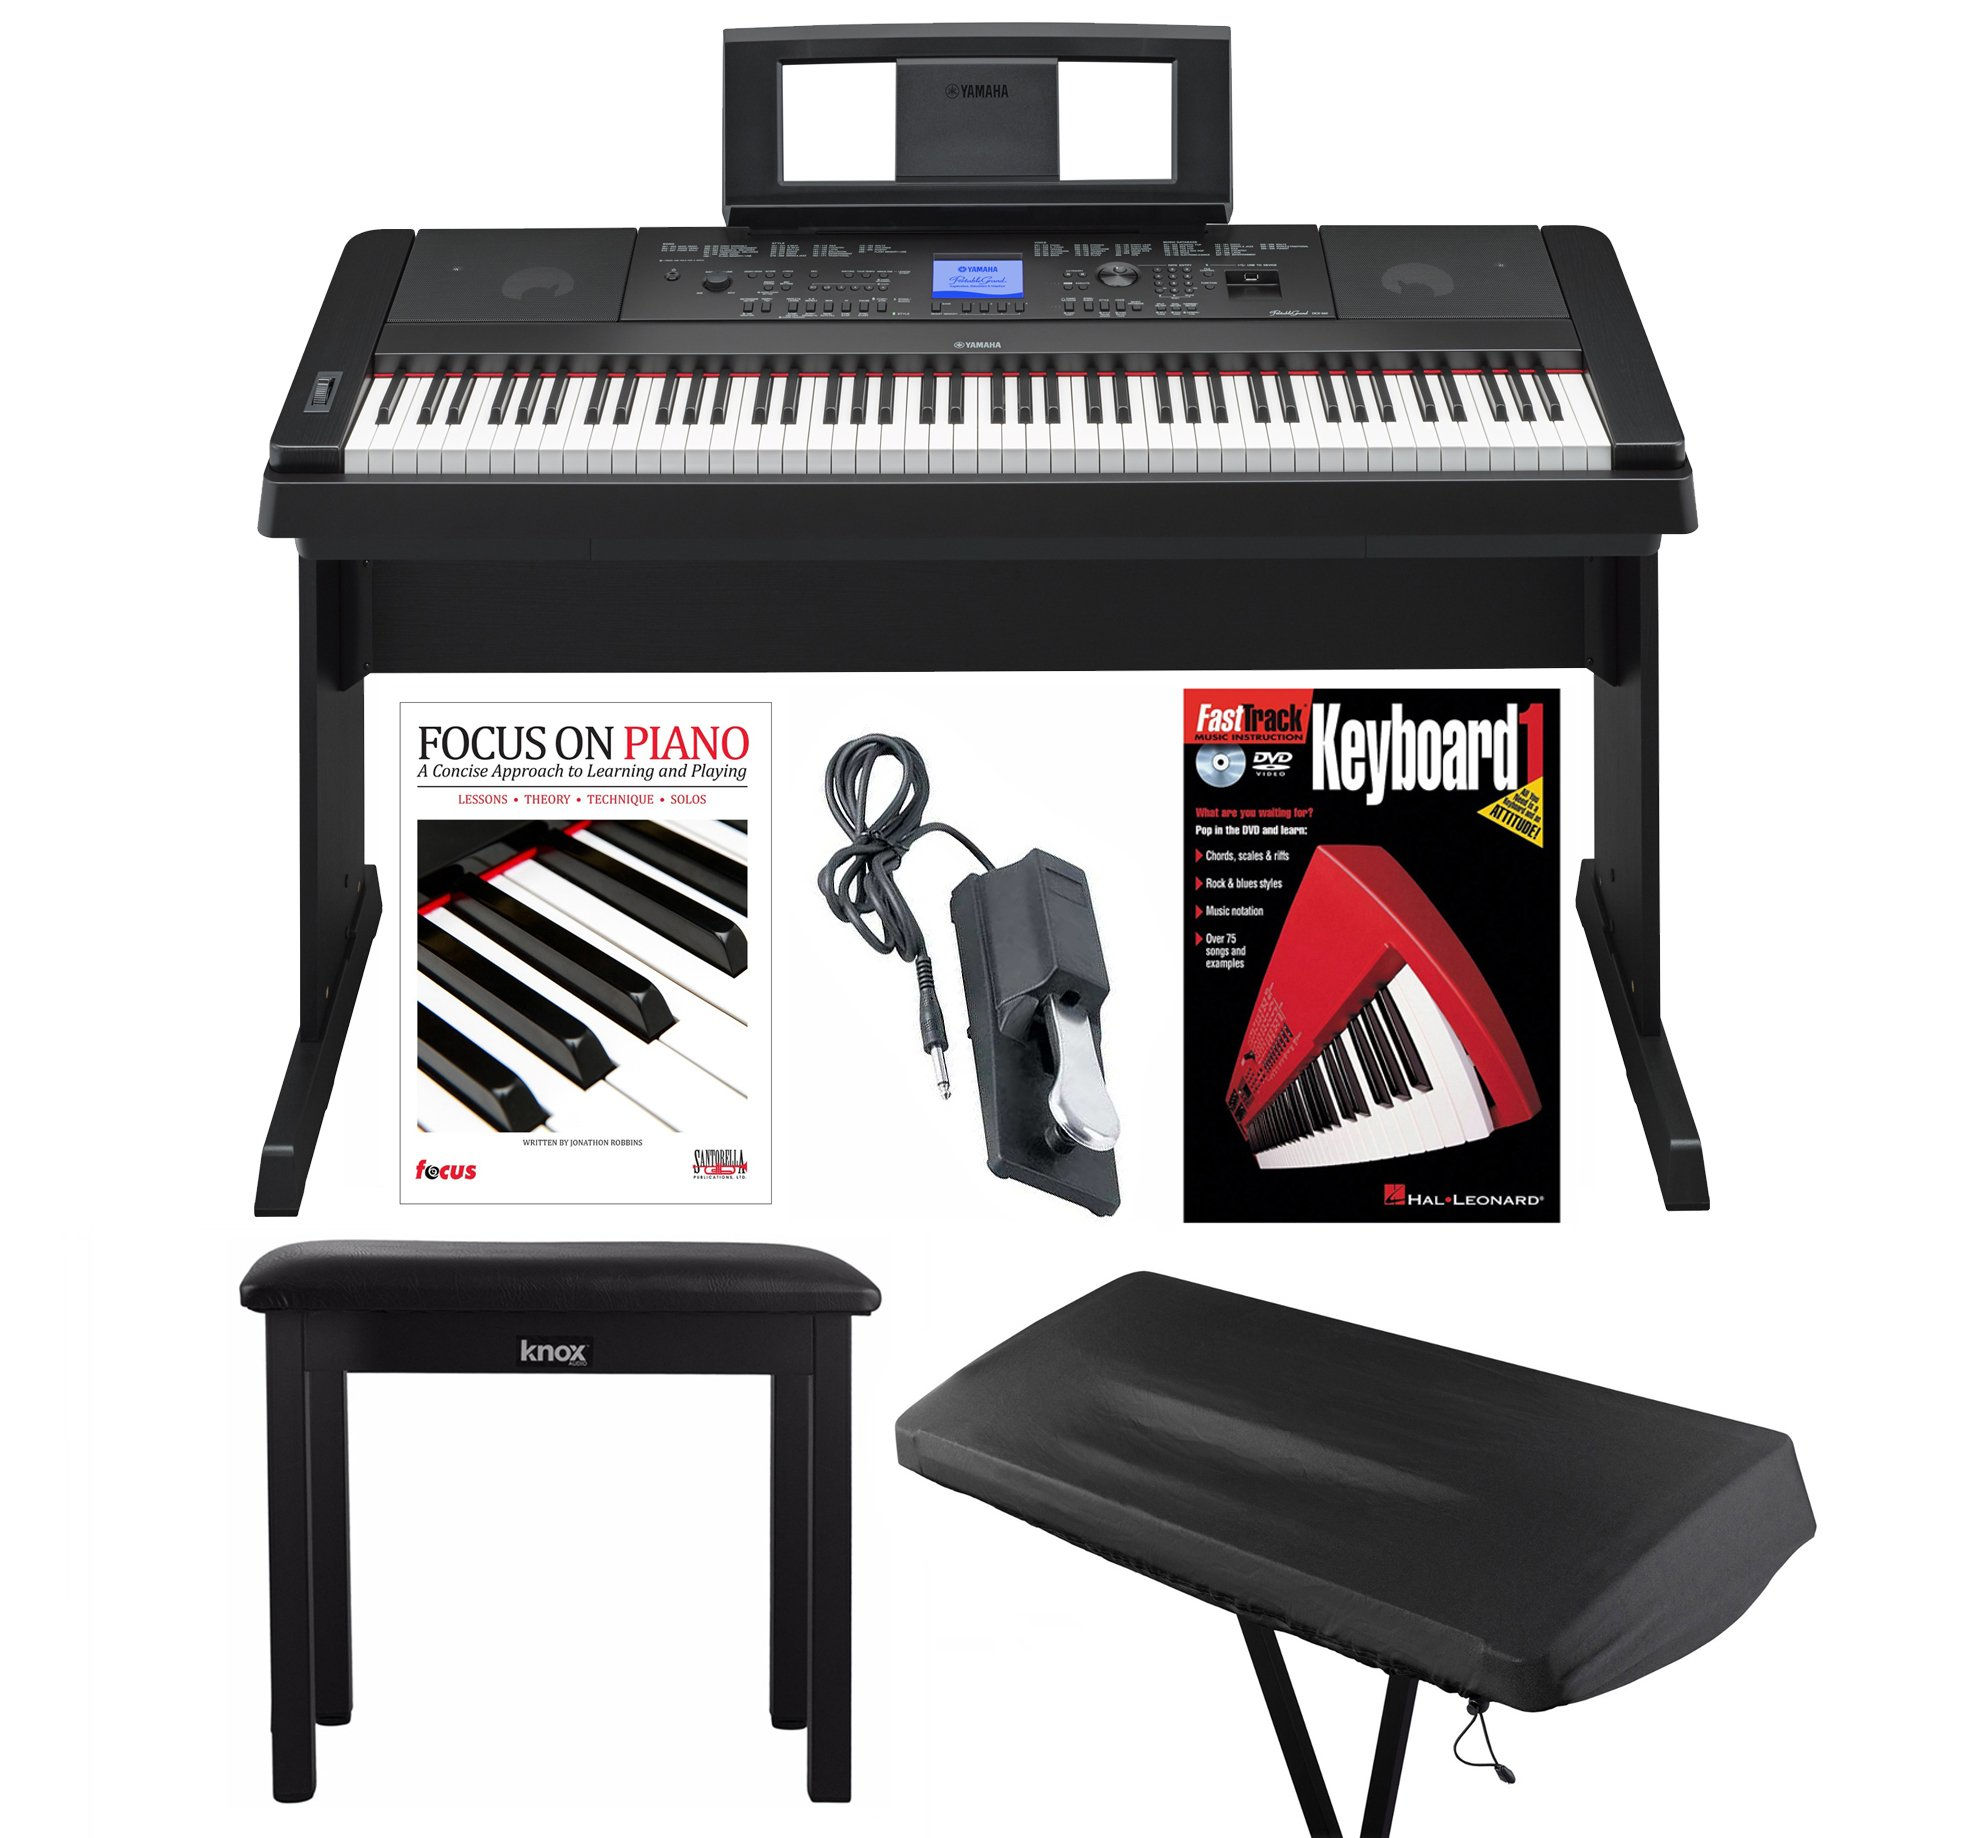 Yamaha DGX660B 88 Weighted Keys Piano with Knox Storage Bench, Dust Cover, Pedal, Book & DVD by YAMAHA